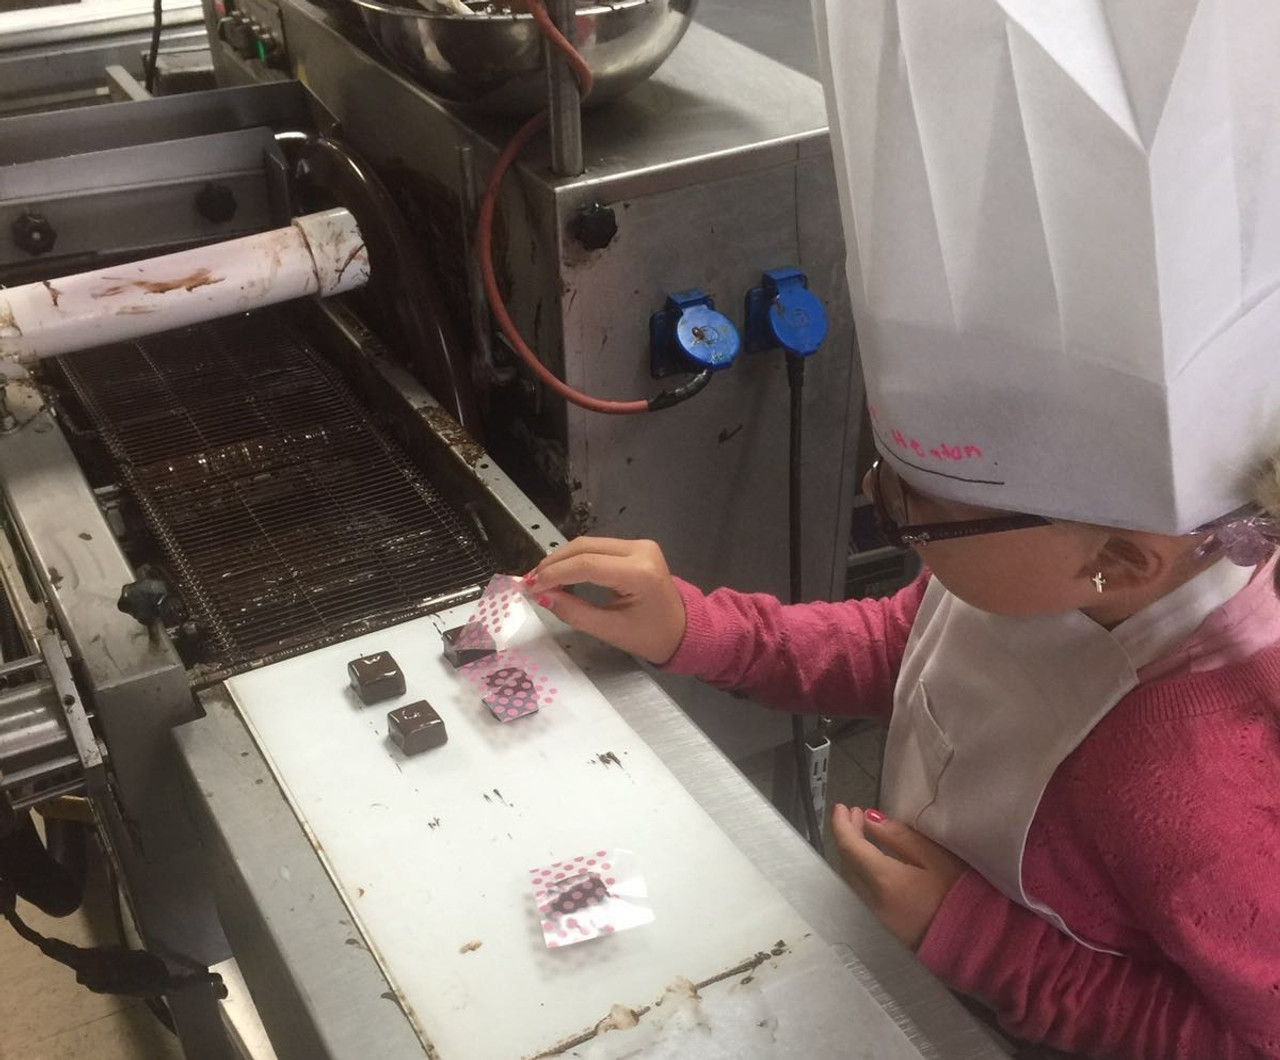 Decorating the chocolates that comes out from the enrobing machine.